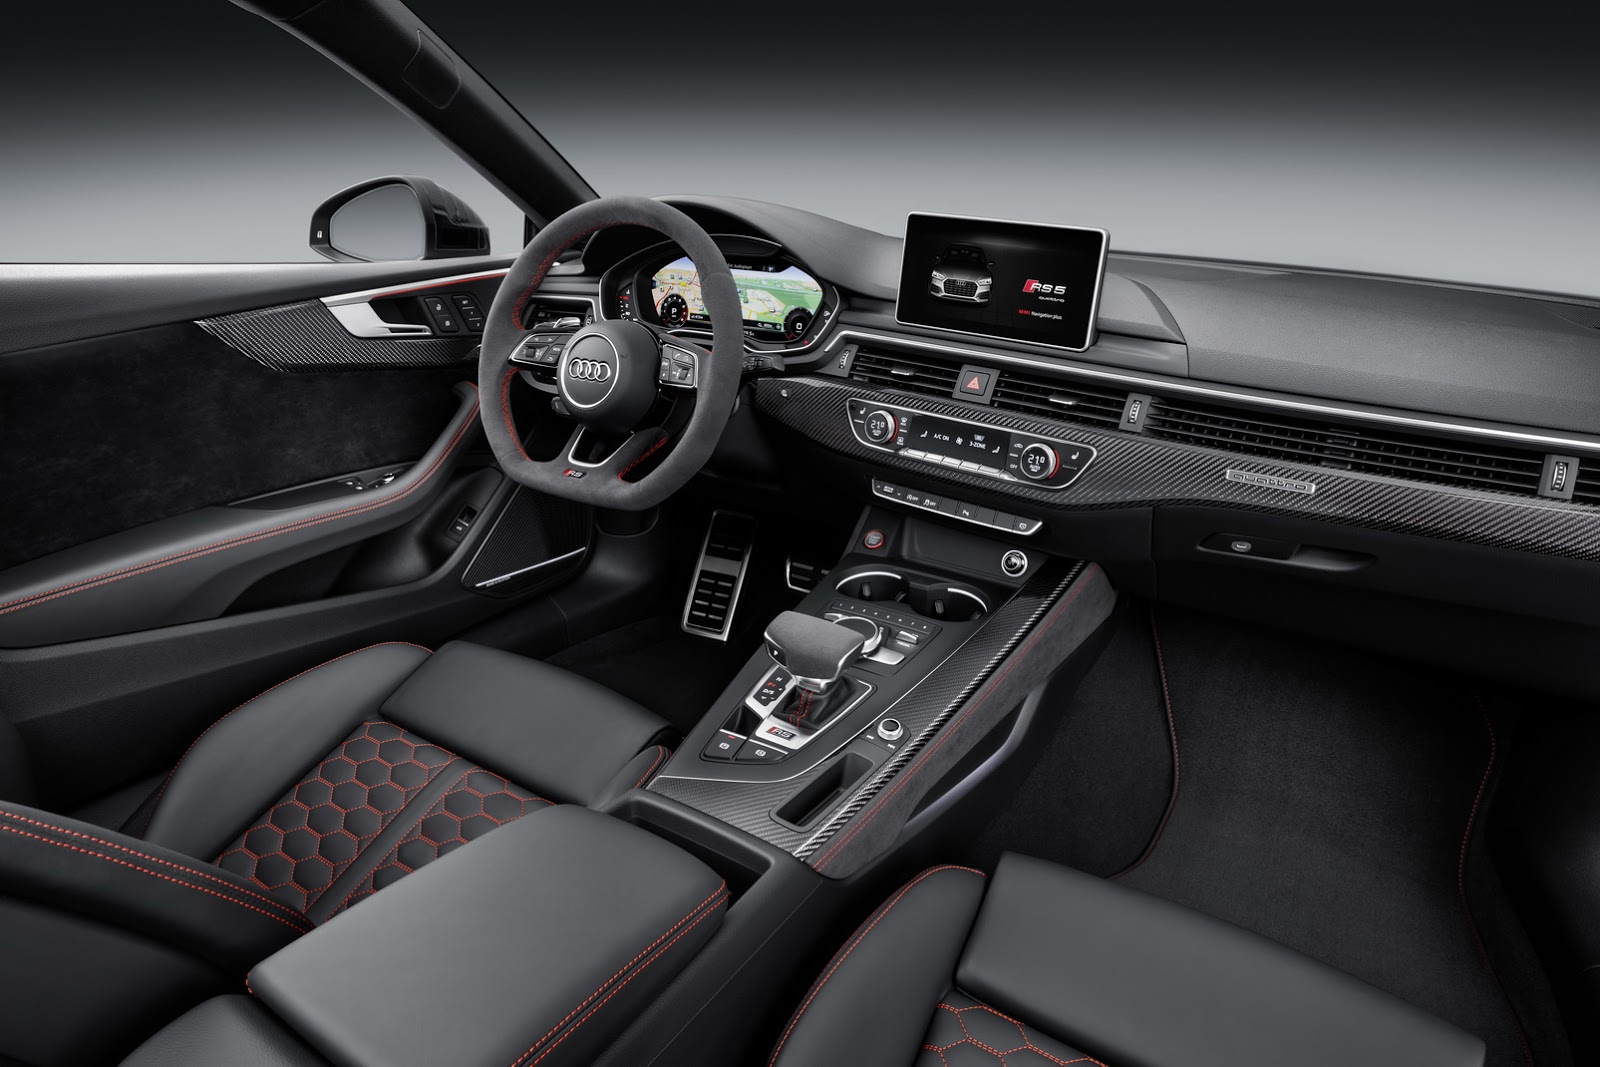 nouvelle audi rs5 adieu le v8 elle passe au v6. Black Bedroom Furniture Sets. Home Design Ideas